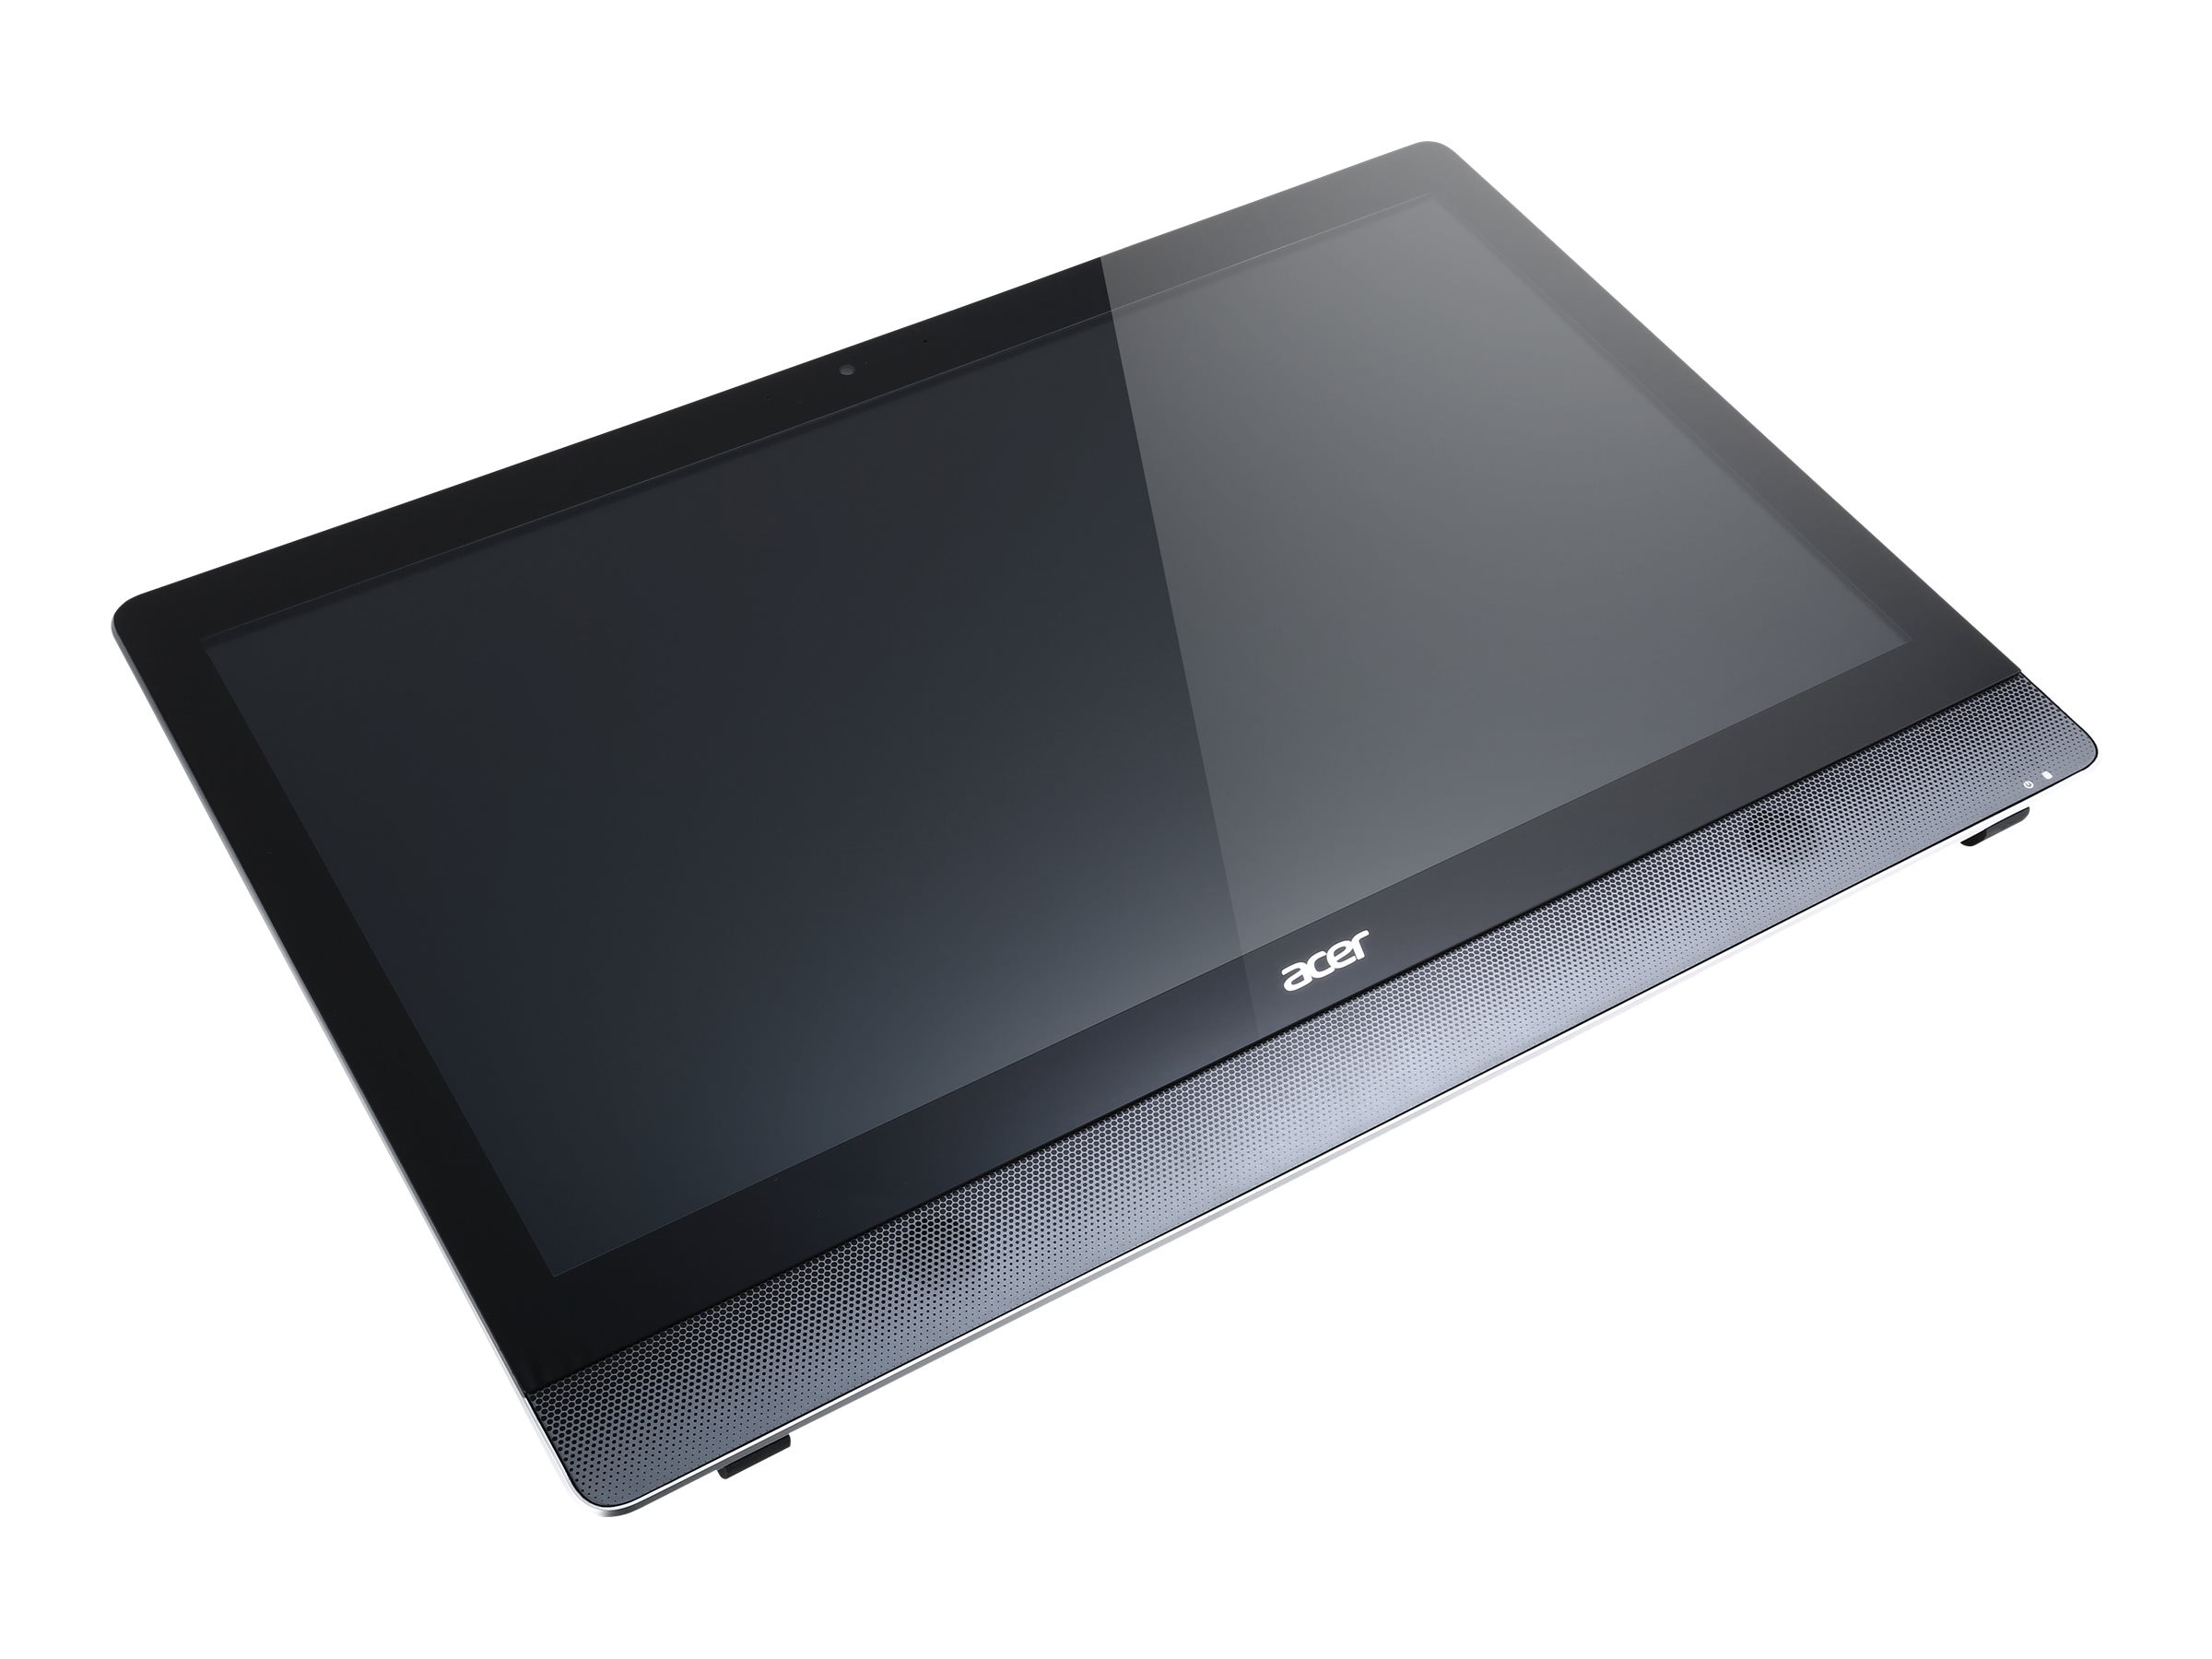 Acer Aspire U5-620 AIO Core i5-4210M 2.6GHz 8GB 1TB HD4600 DVD SM GbE ac BT WC 23 FHD MT W10H64, DQ.SUNAA.003